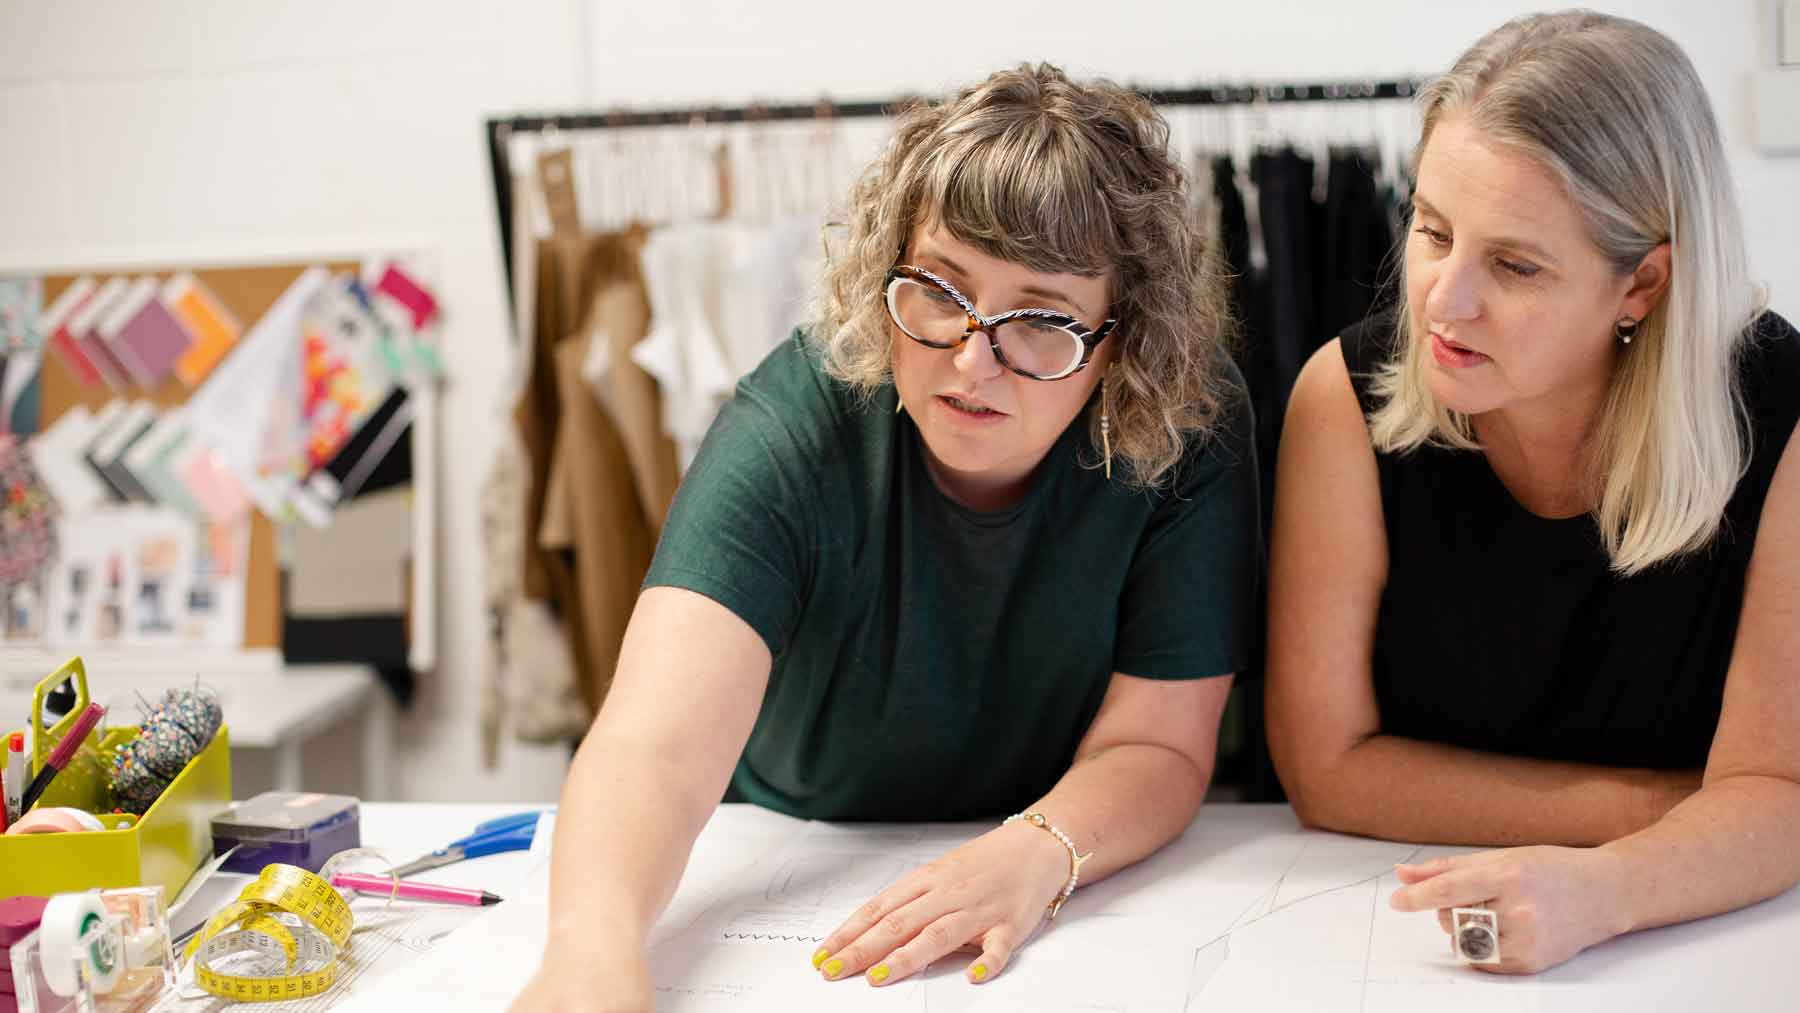 Asmuss Founder Clare and Fiona discussing a pattern in their studio